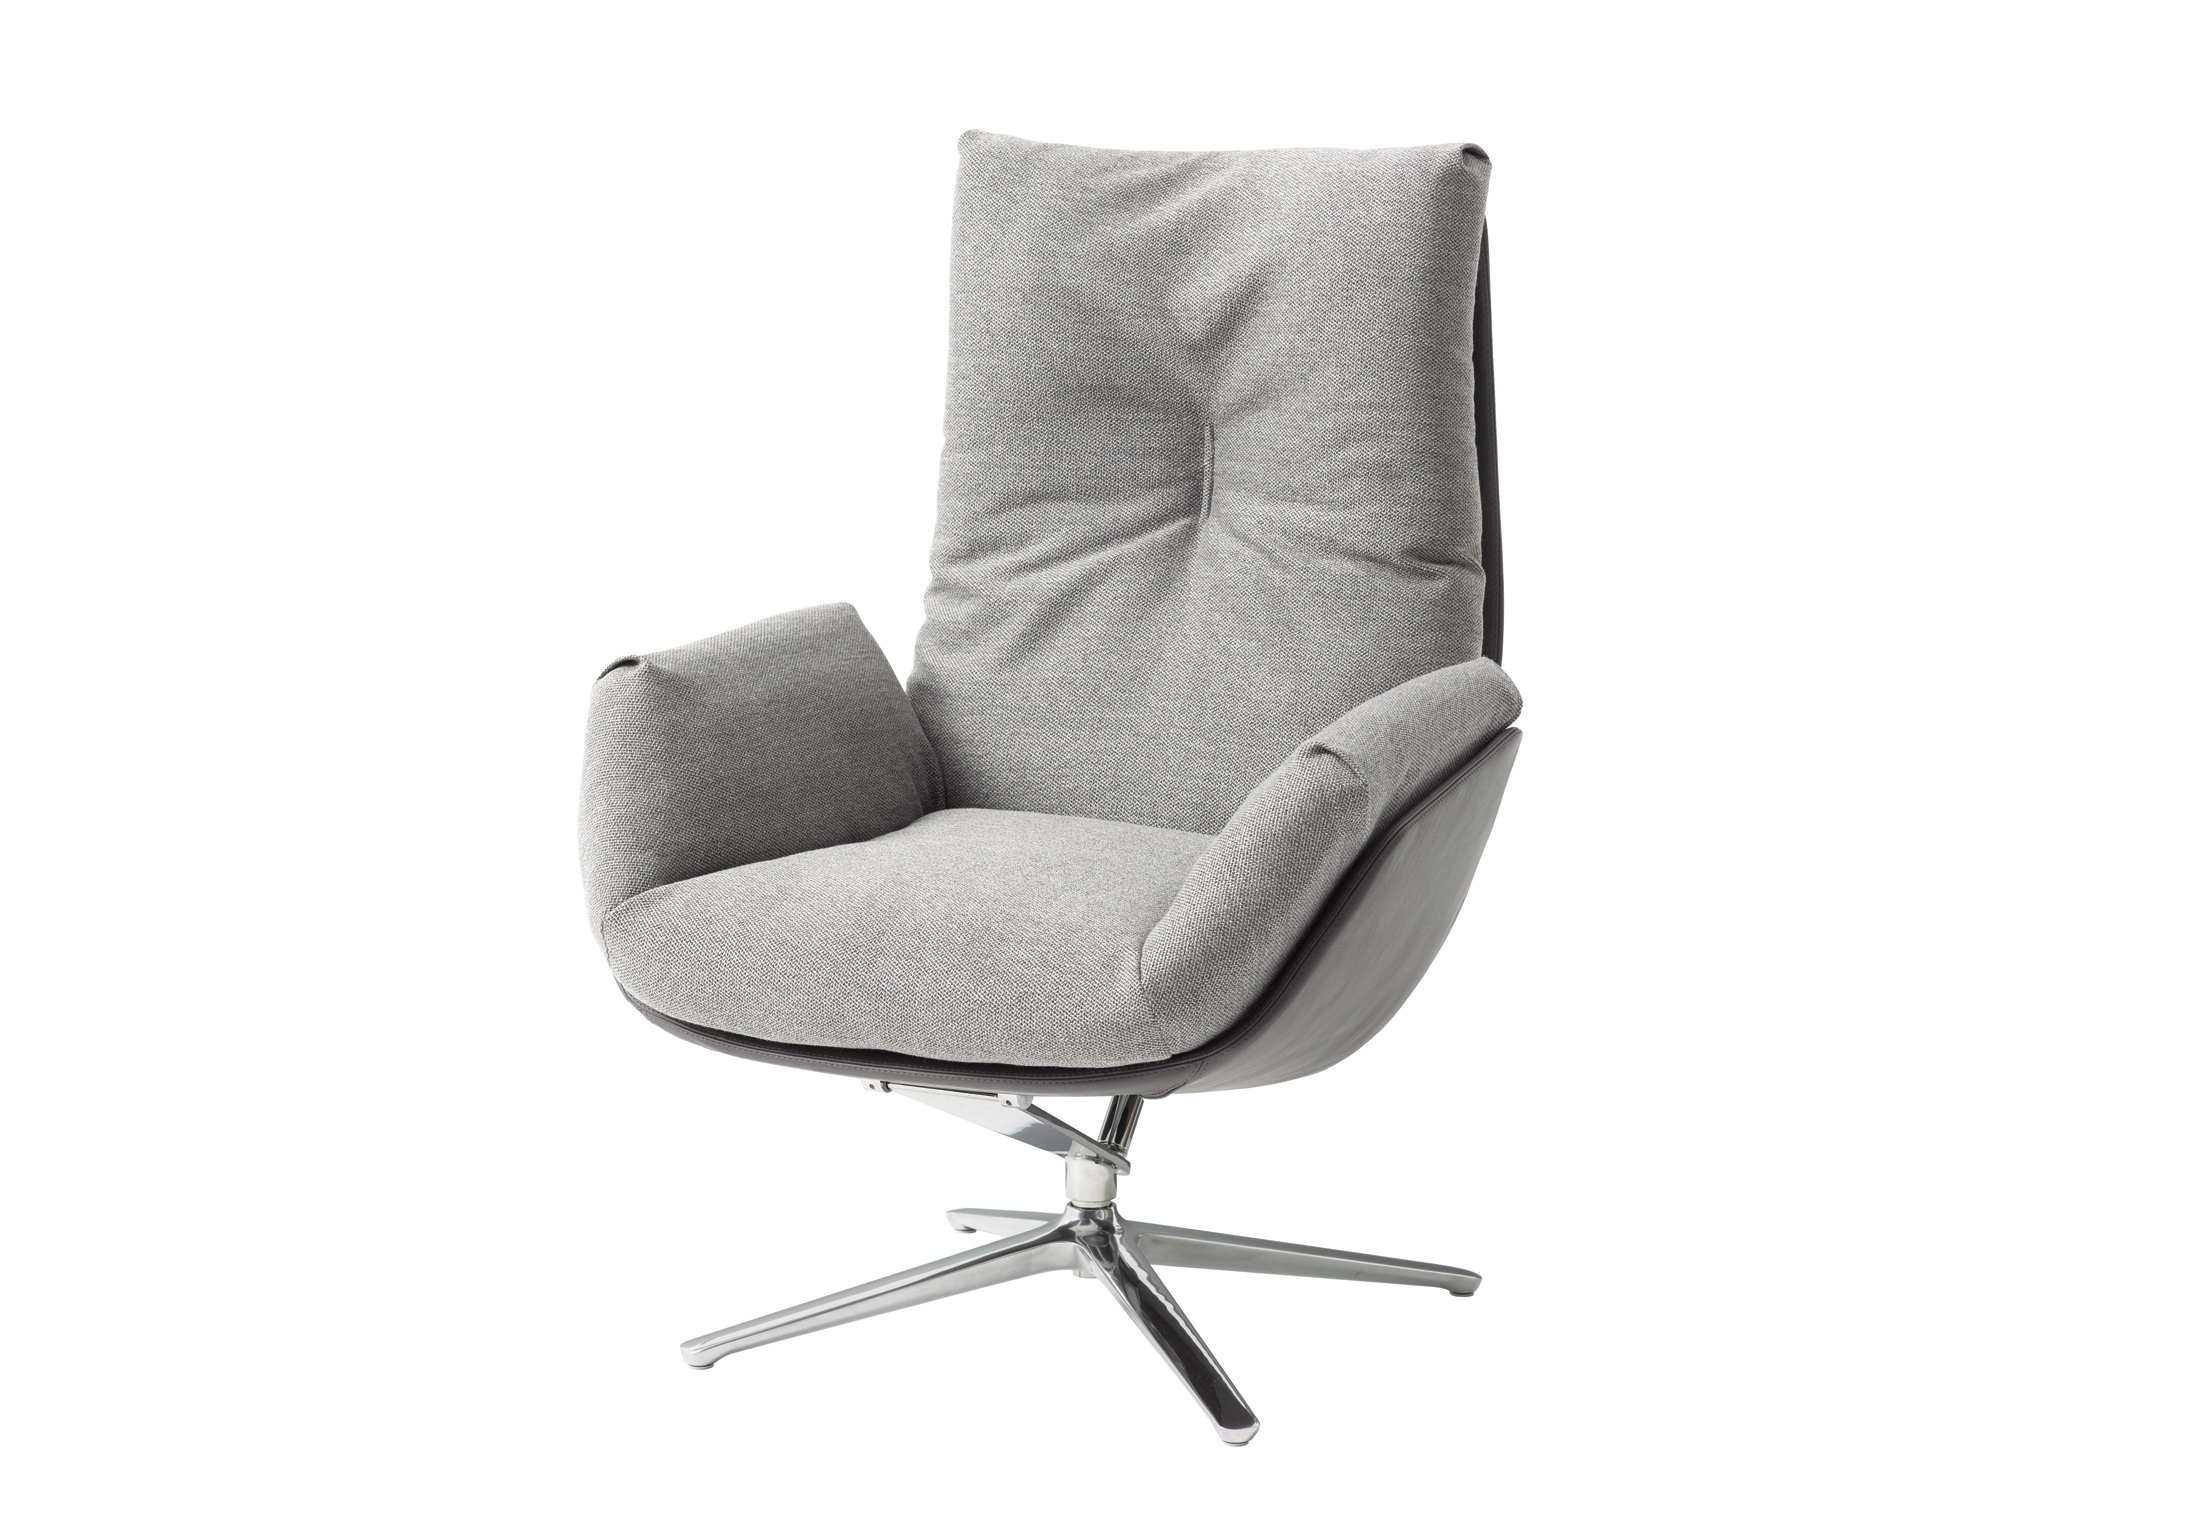 Cordia Lounge Chair by Jehs + Laub for COR